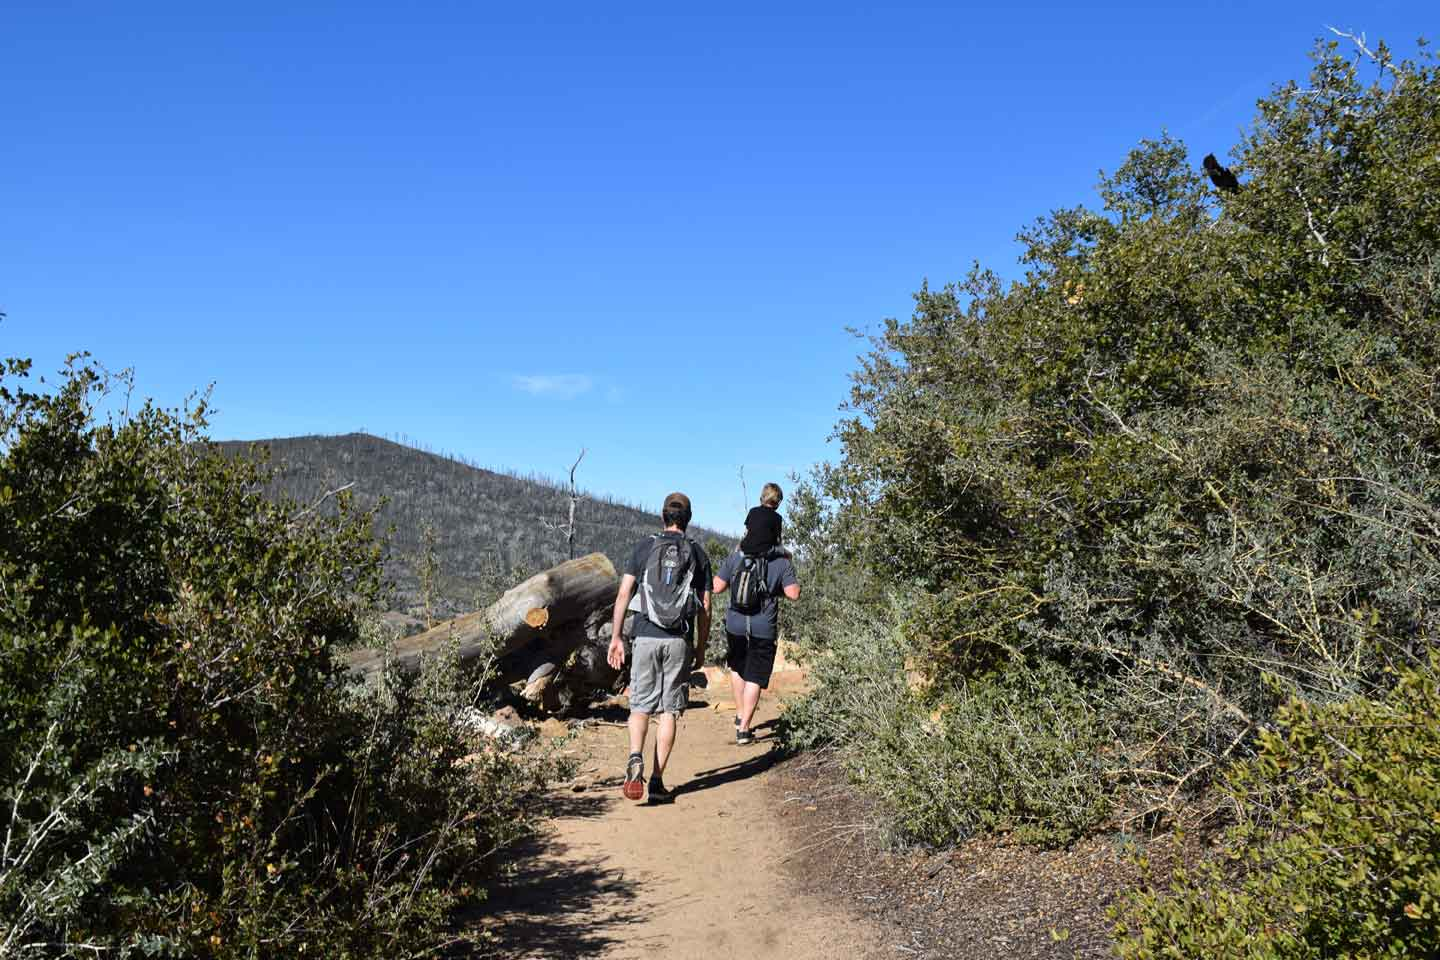 William Heise County Park - 4945 Heise Park Rd., Julian • 760-765-0650Canyon Oak Trail: 1.25 miles that connects to the Desert View Trail.Kelly Ditch Trail: 5.75 miles, great for walking or riding horses. Trail connects the park with Cuyamaca Rancho State Park and Lake Cuyamaca.